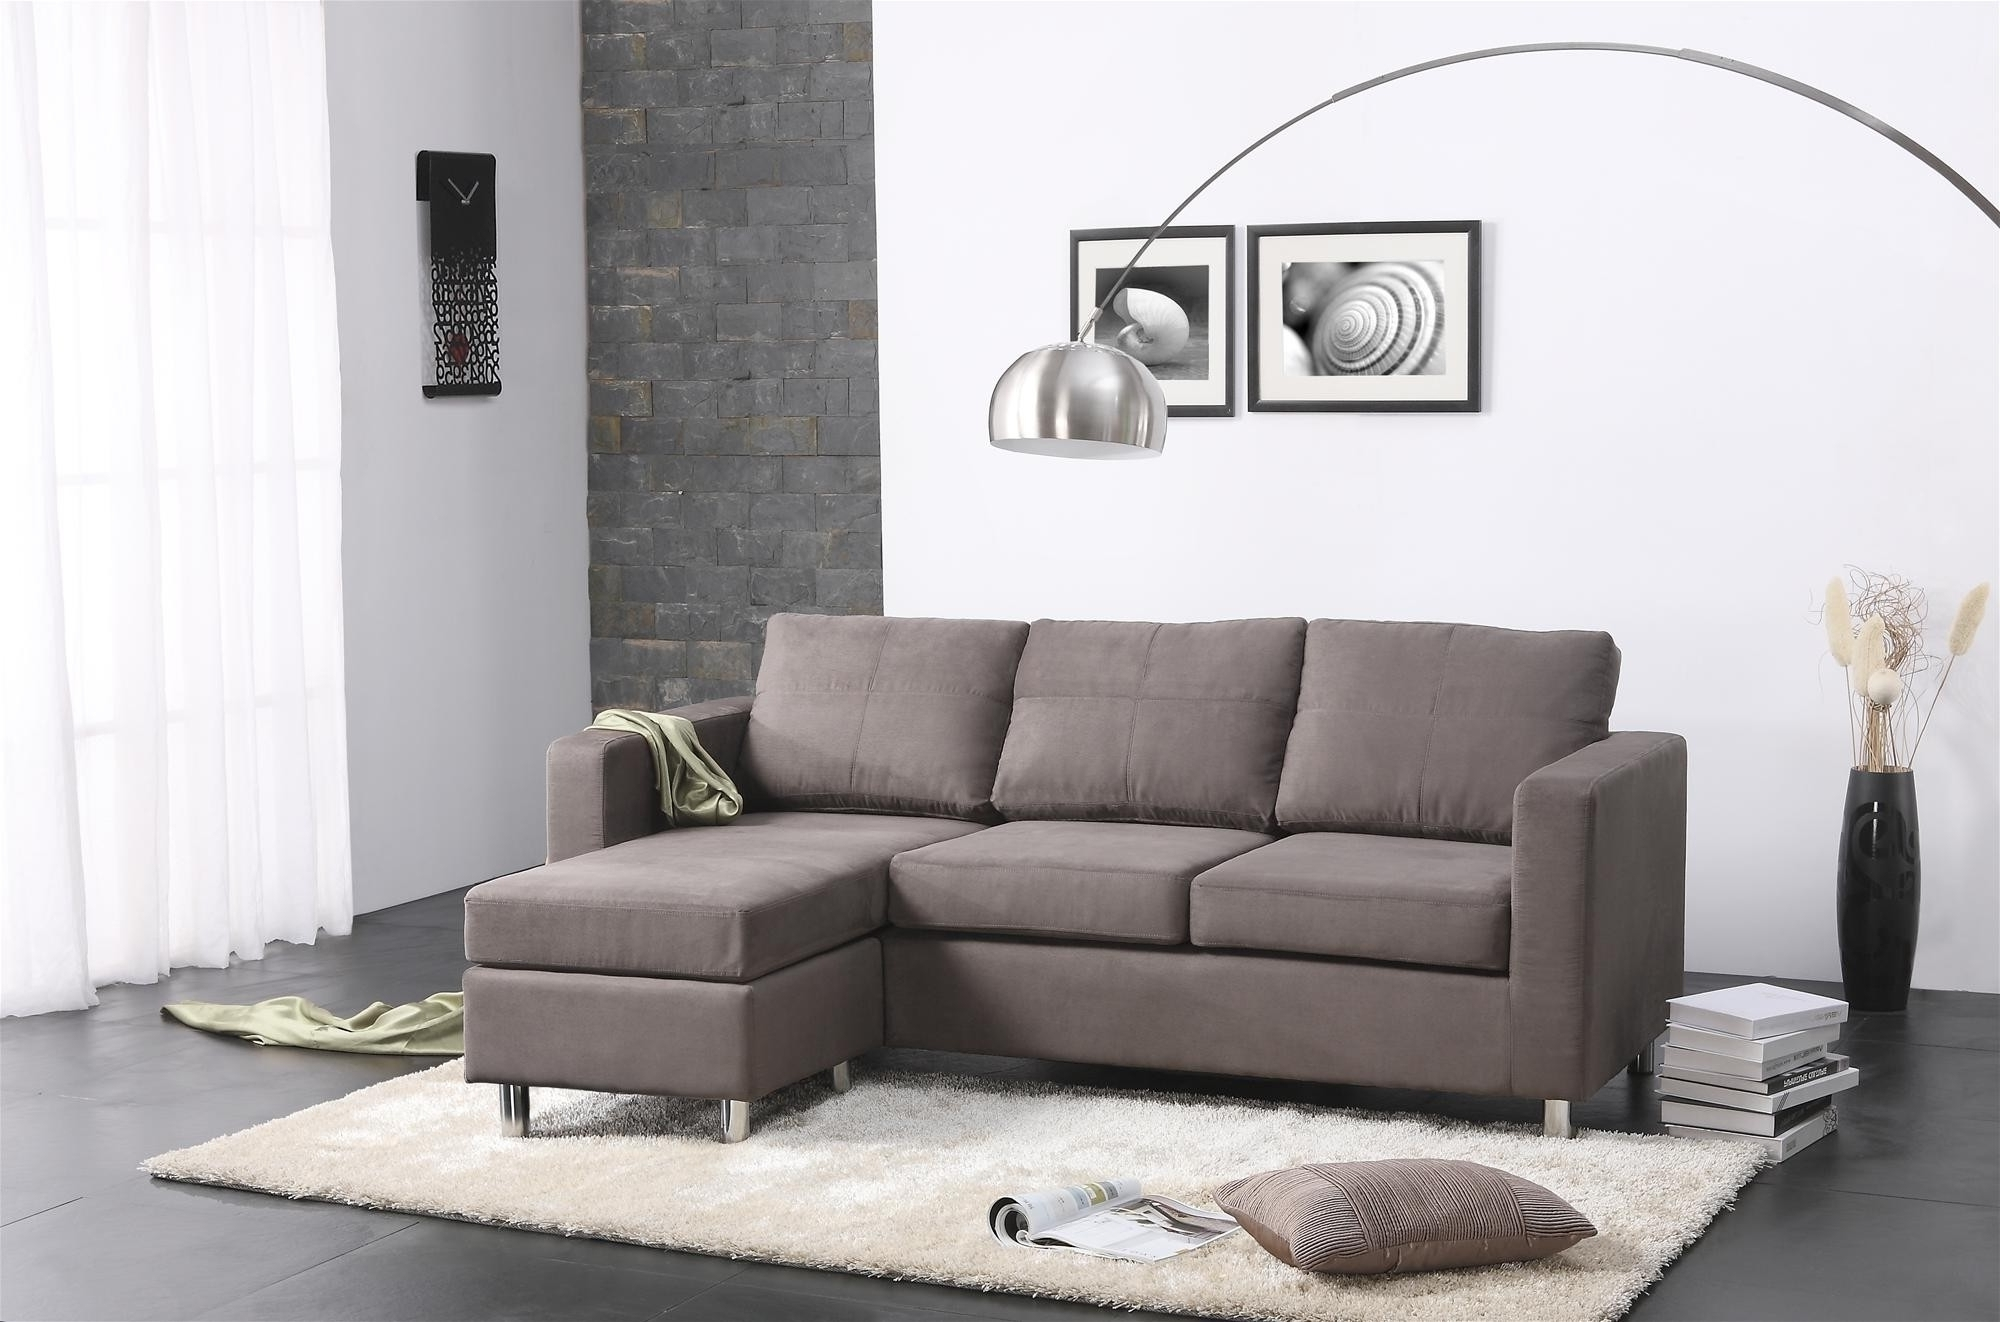 Most Current Incredible Condo Sectional Sofa – Mediasupload Throughout Sectional Sofas For Condos (Gallery 11 of 20)